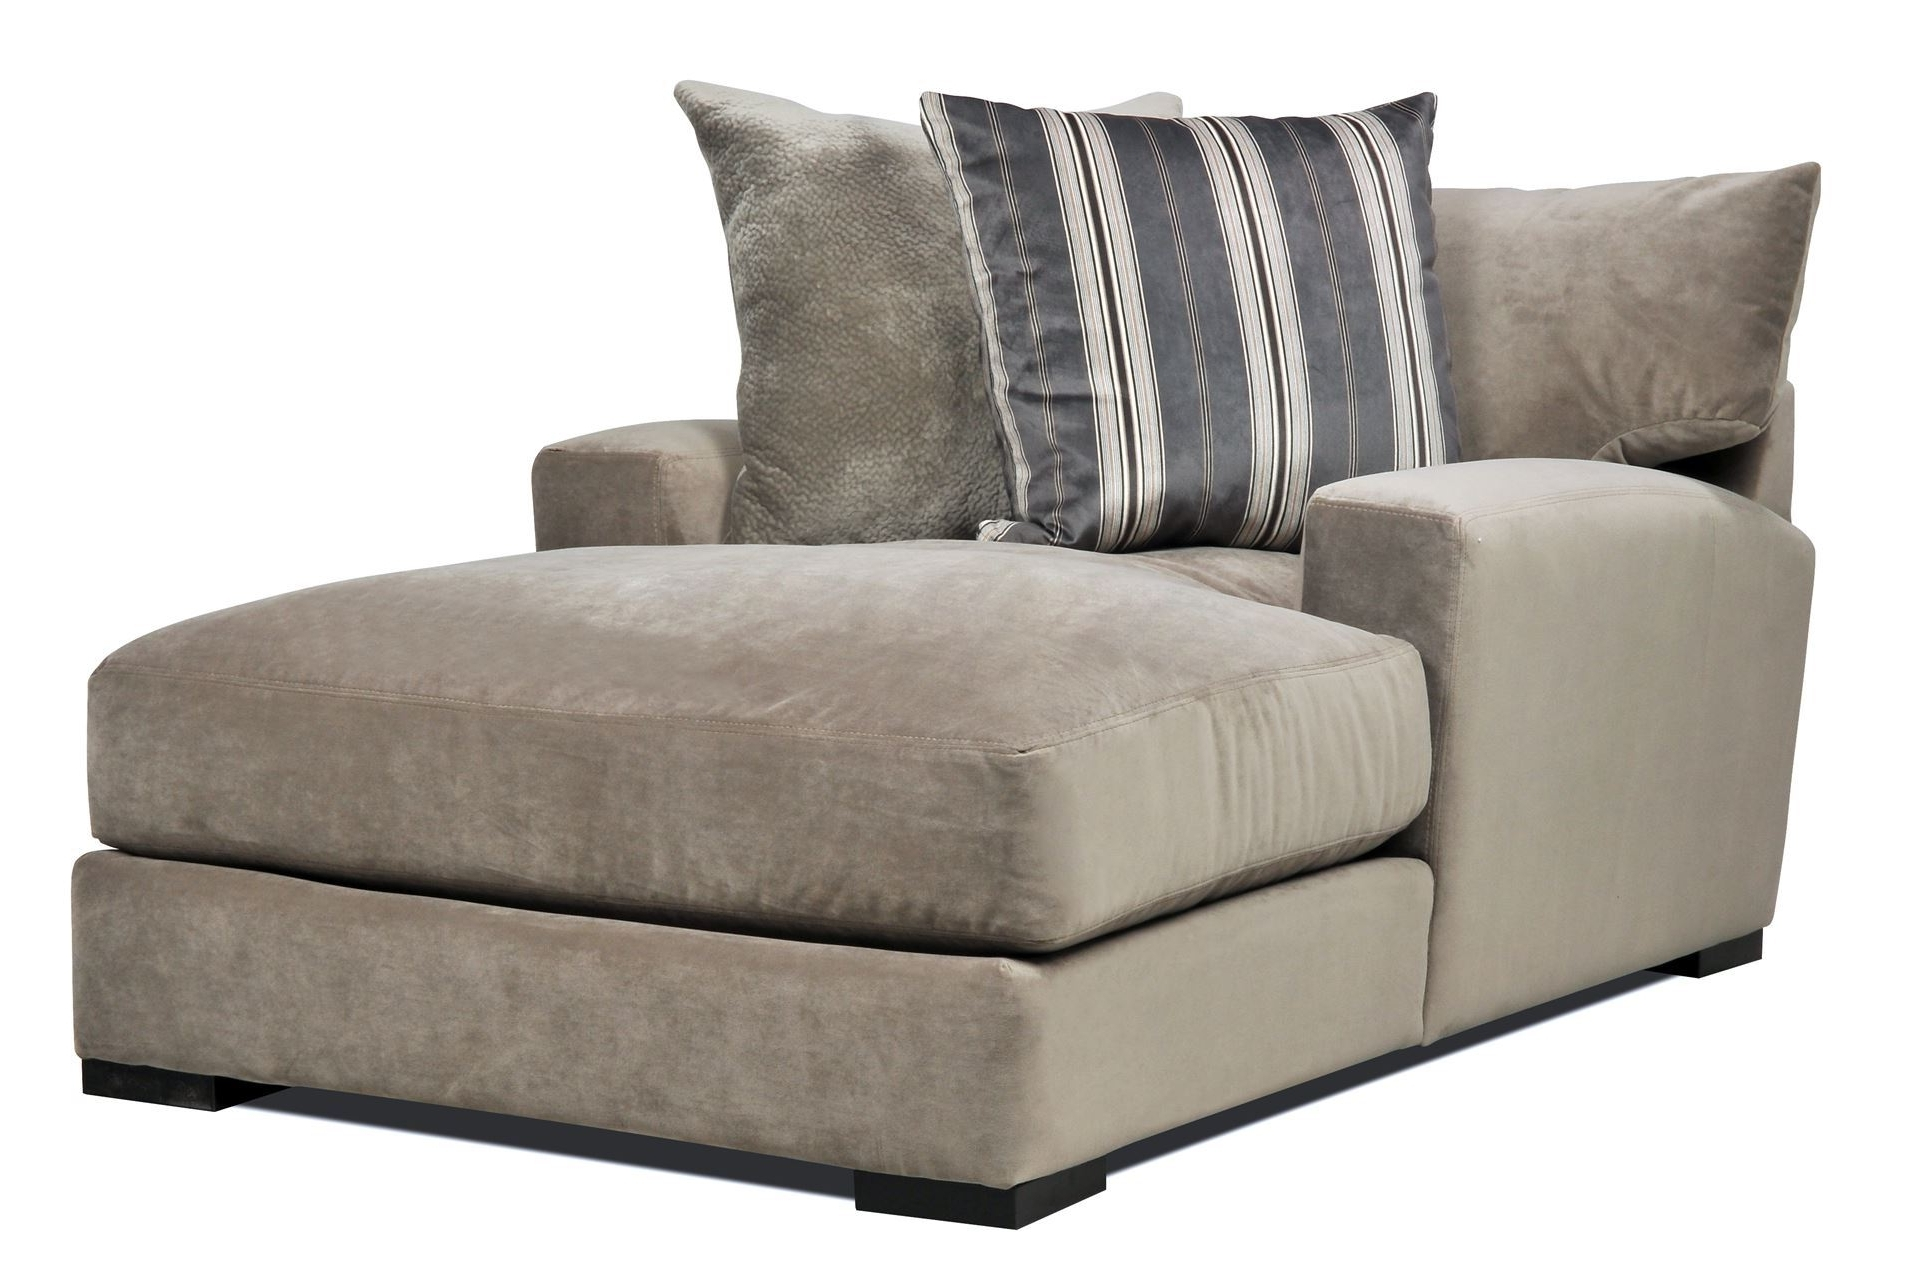 Newest Decoration In Large Chaise Lounge With Oversized Chaise Lounge In Oversized Chaise Lounge Chairs (View 10 of 15)